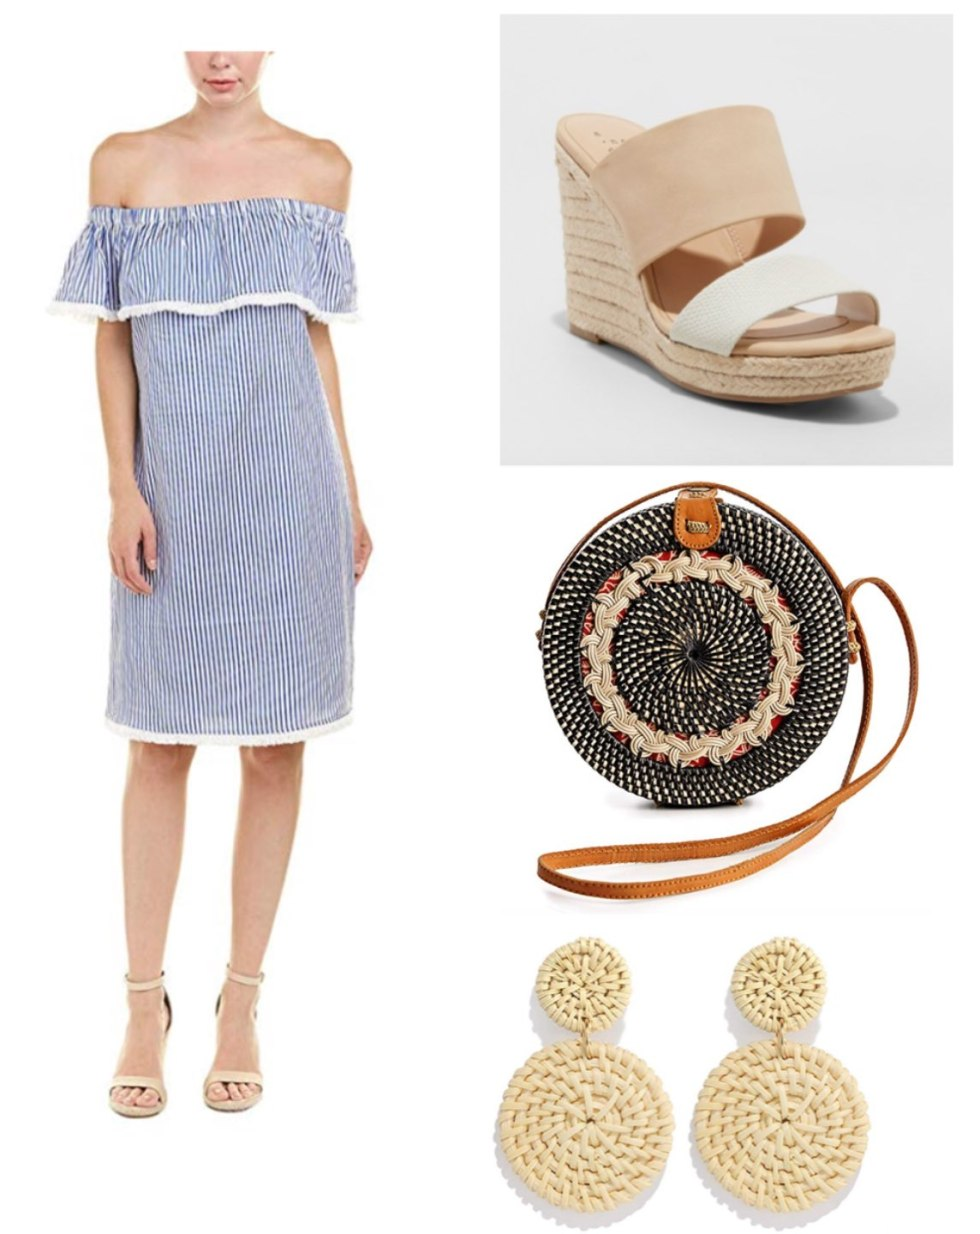 Three 4th of July Outfit Ideas to Celebrate Independence Day by popular North Carolina life and style blog, I'm Fixin' To: collage image of white and blue strip off-the-shoulder dress, Target Women's Adelina Espadrilles Slide Sandals by A New Day, Novum Crafts Rattan Bags for women, and JERTOCLE Weave Straw Double Disc Drop Earrings Boho Rattan Dangle Statement Earrings